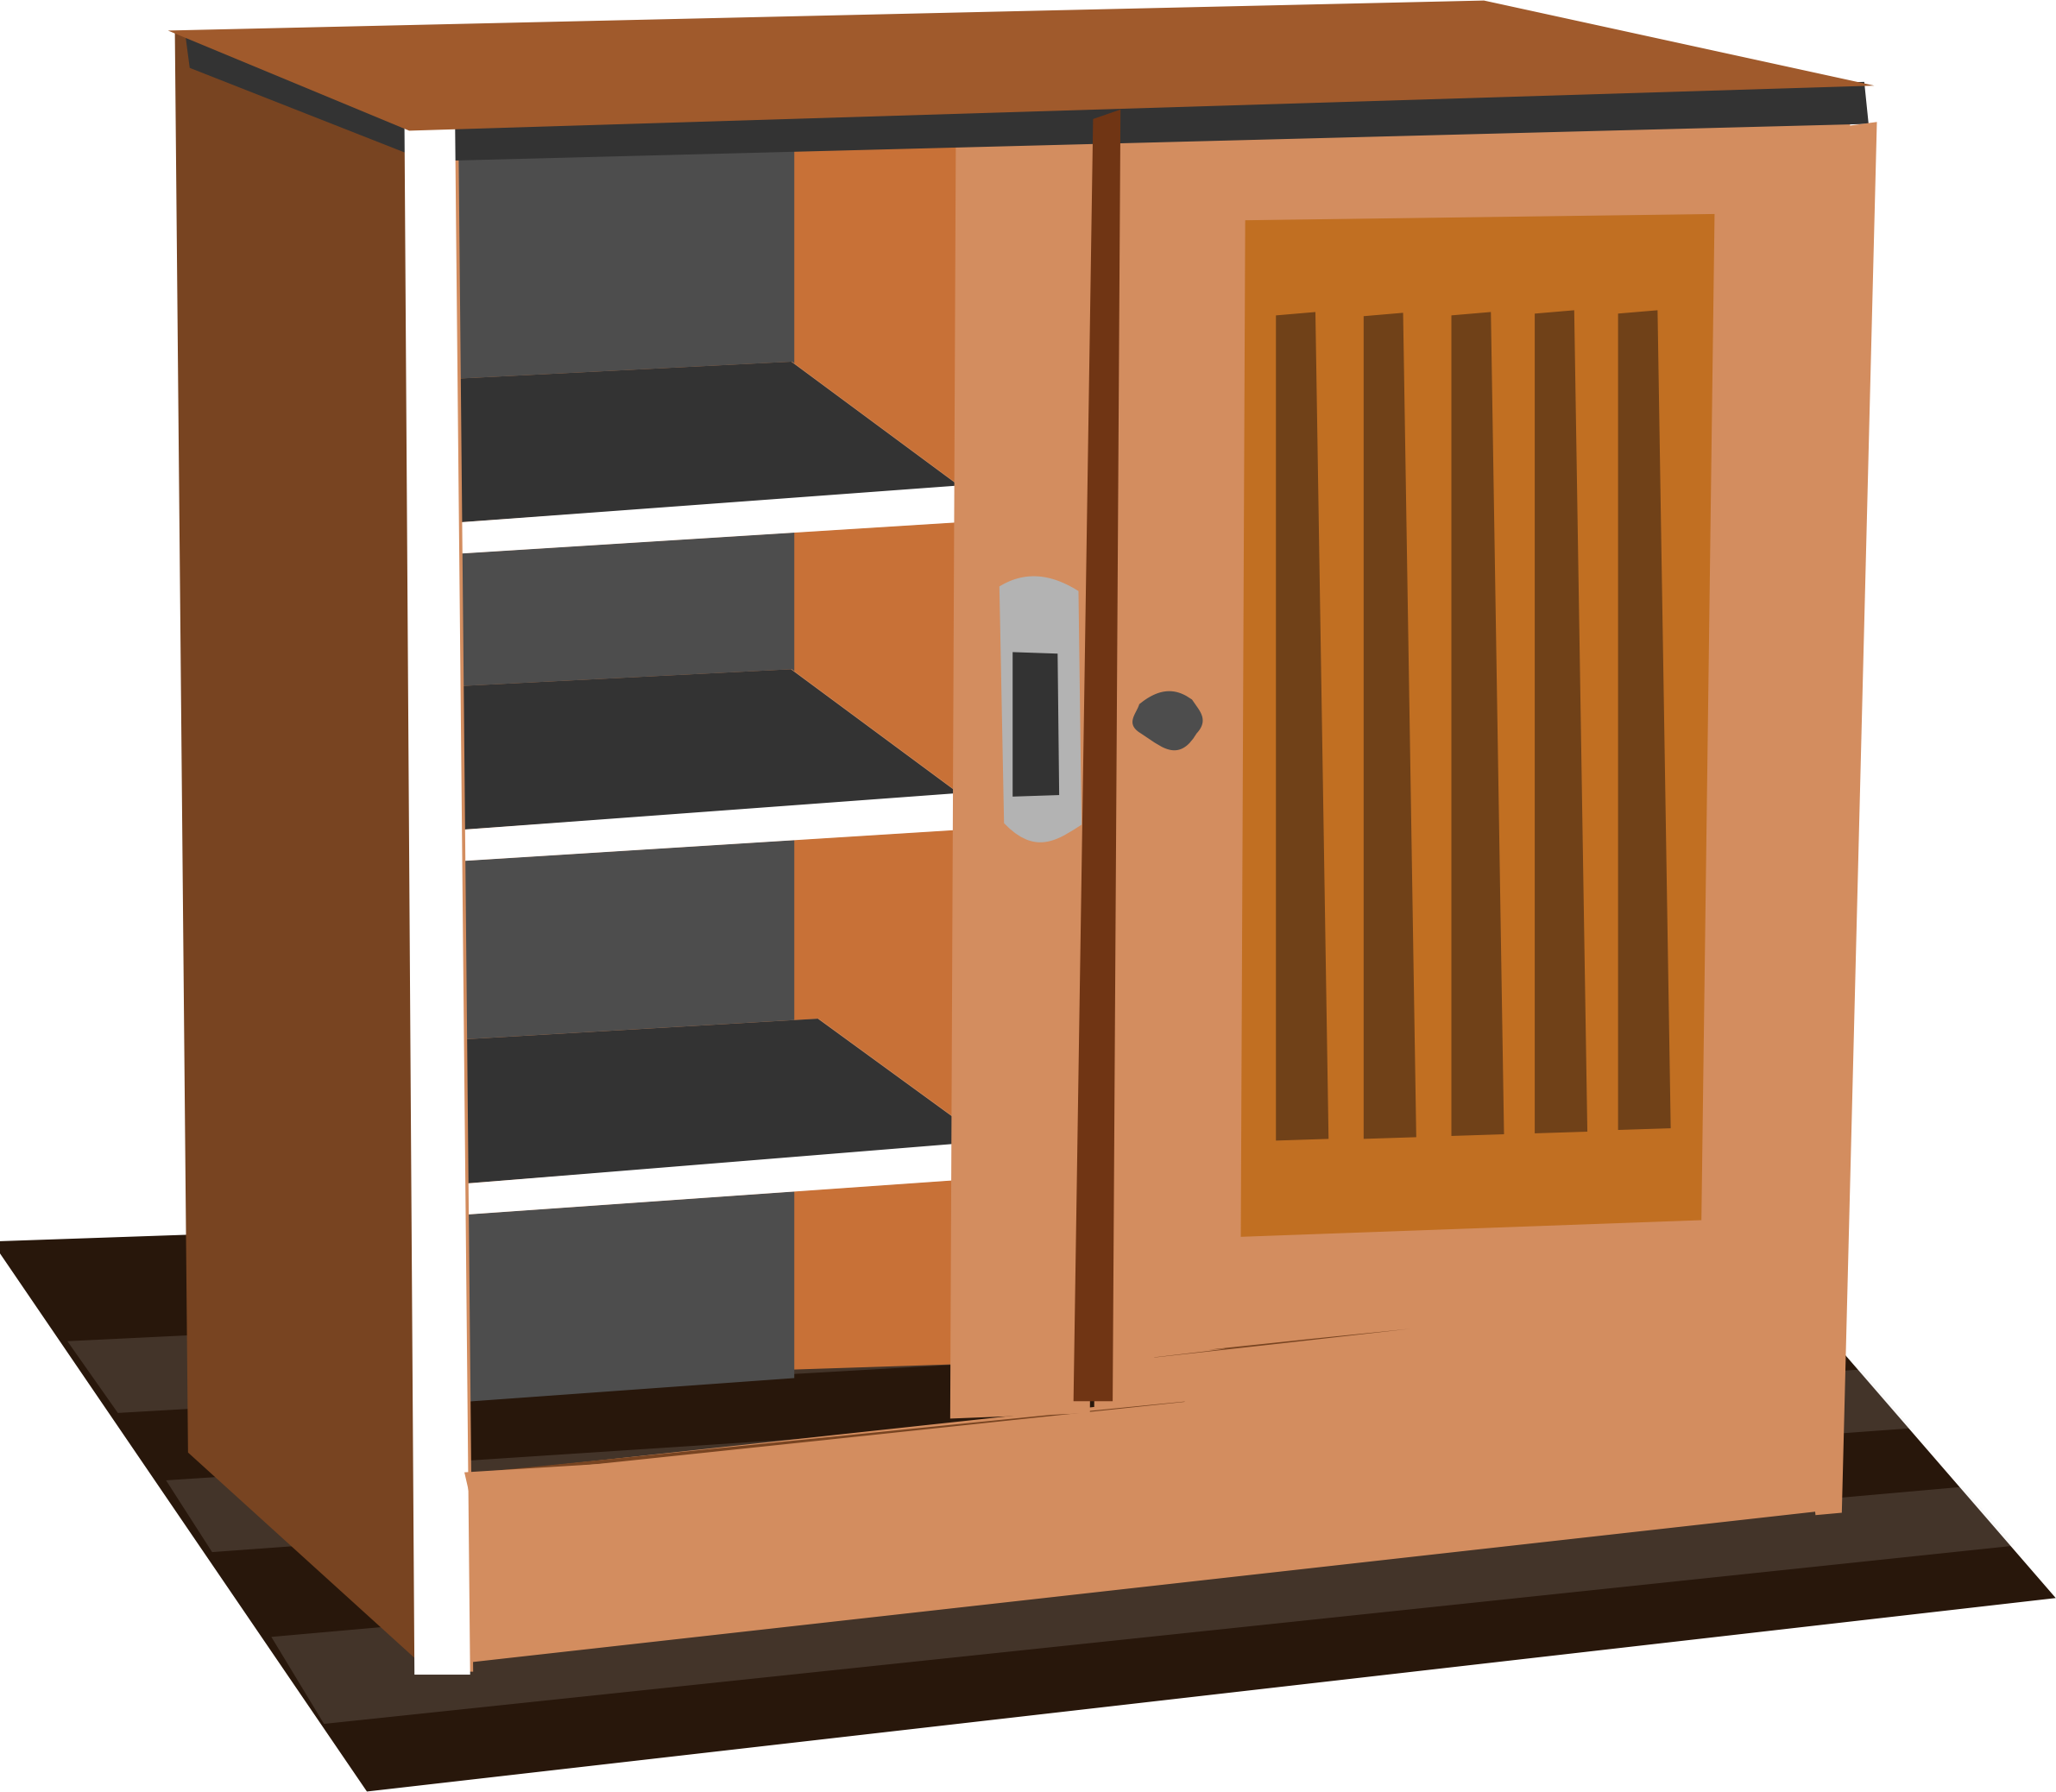 royalty free stock Cupboard png images free. Closet clipart background.